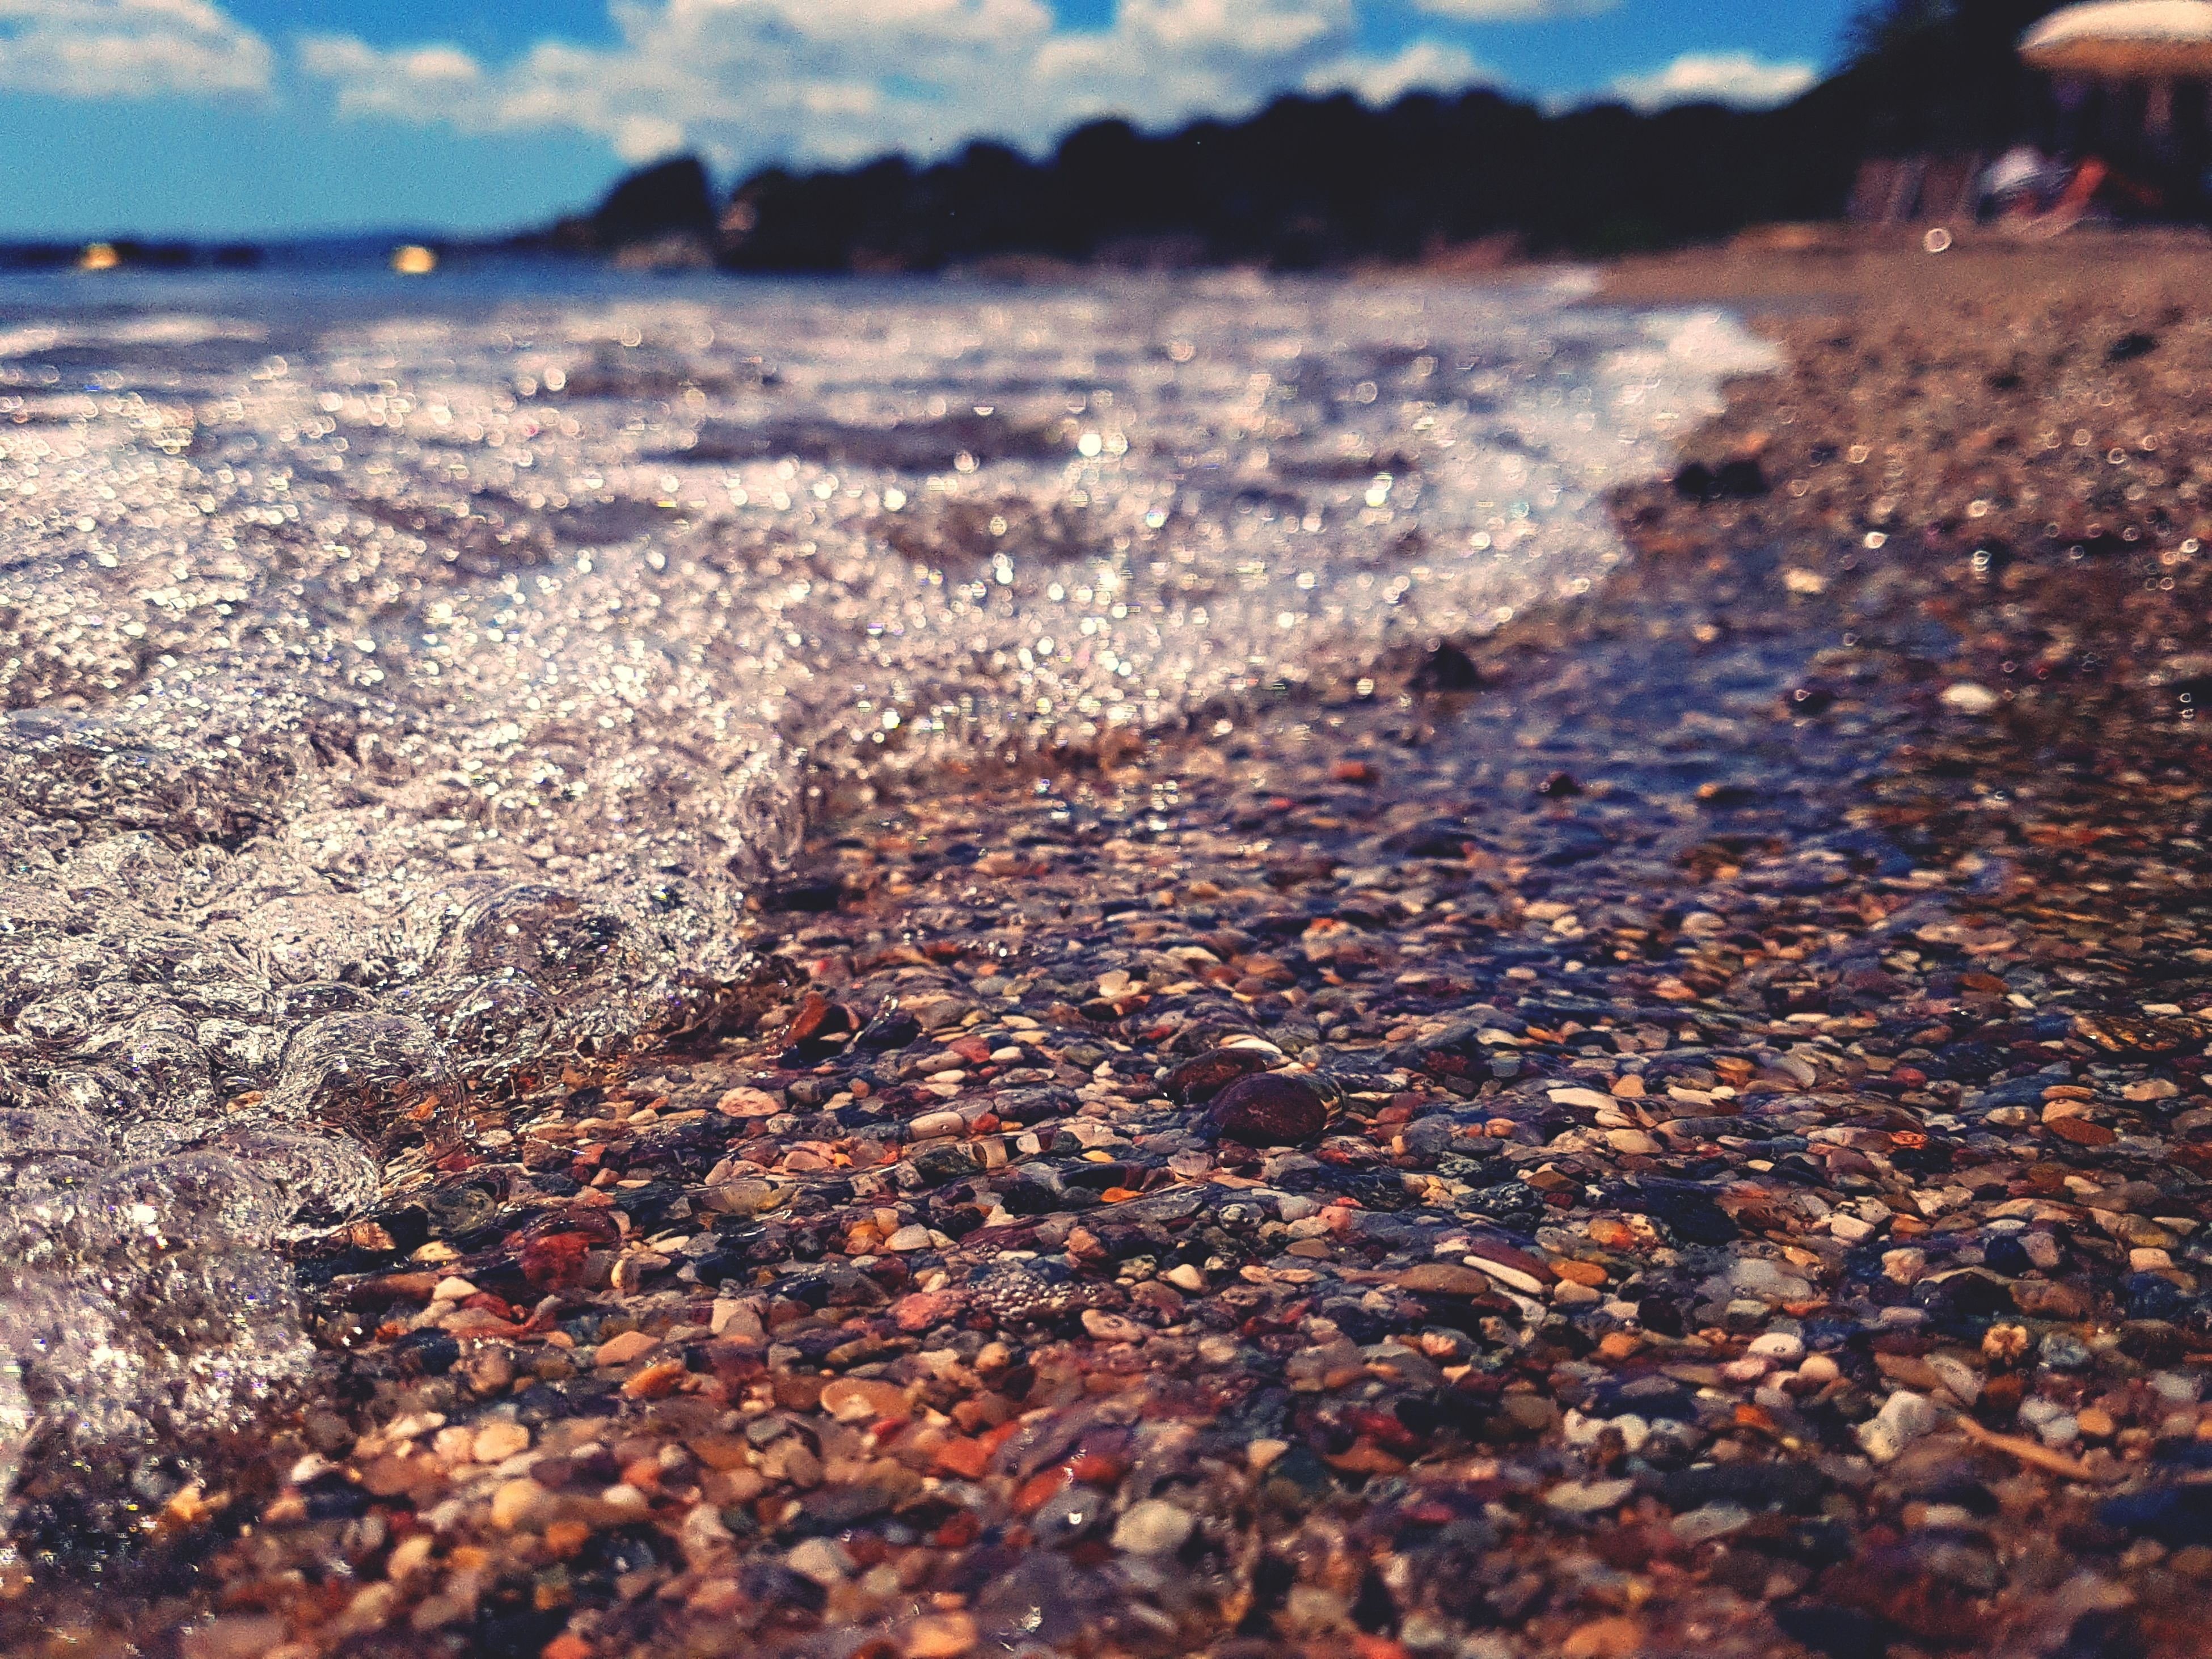 low section, surface level, outdoors, nature, day, tranquility, beauty in nature, sunlight, water, close-up, scenics, beach, human body part, one person, pebble beach, people